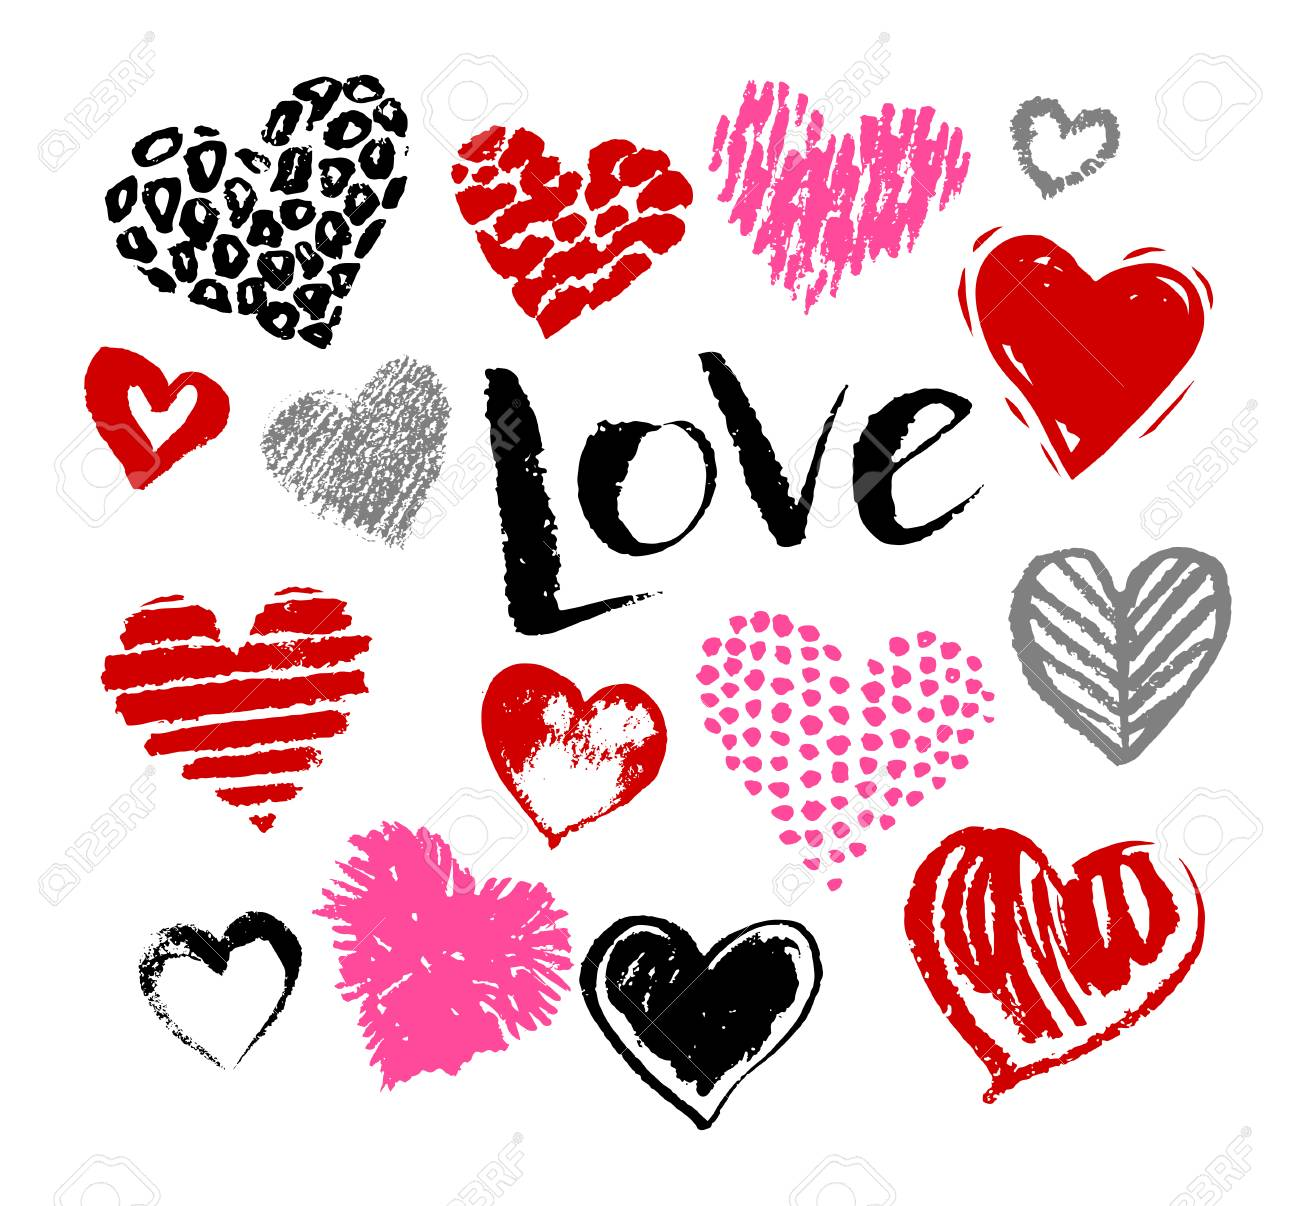 Stock Photo Vector Hand Drawn Collection Of Grunge Valentine Hearts On White Background With Love Word Lettering